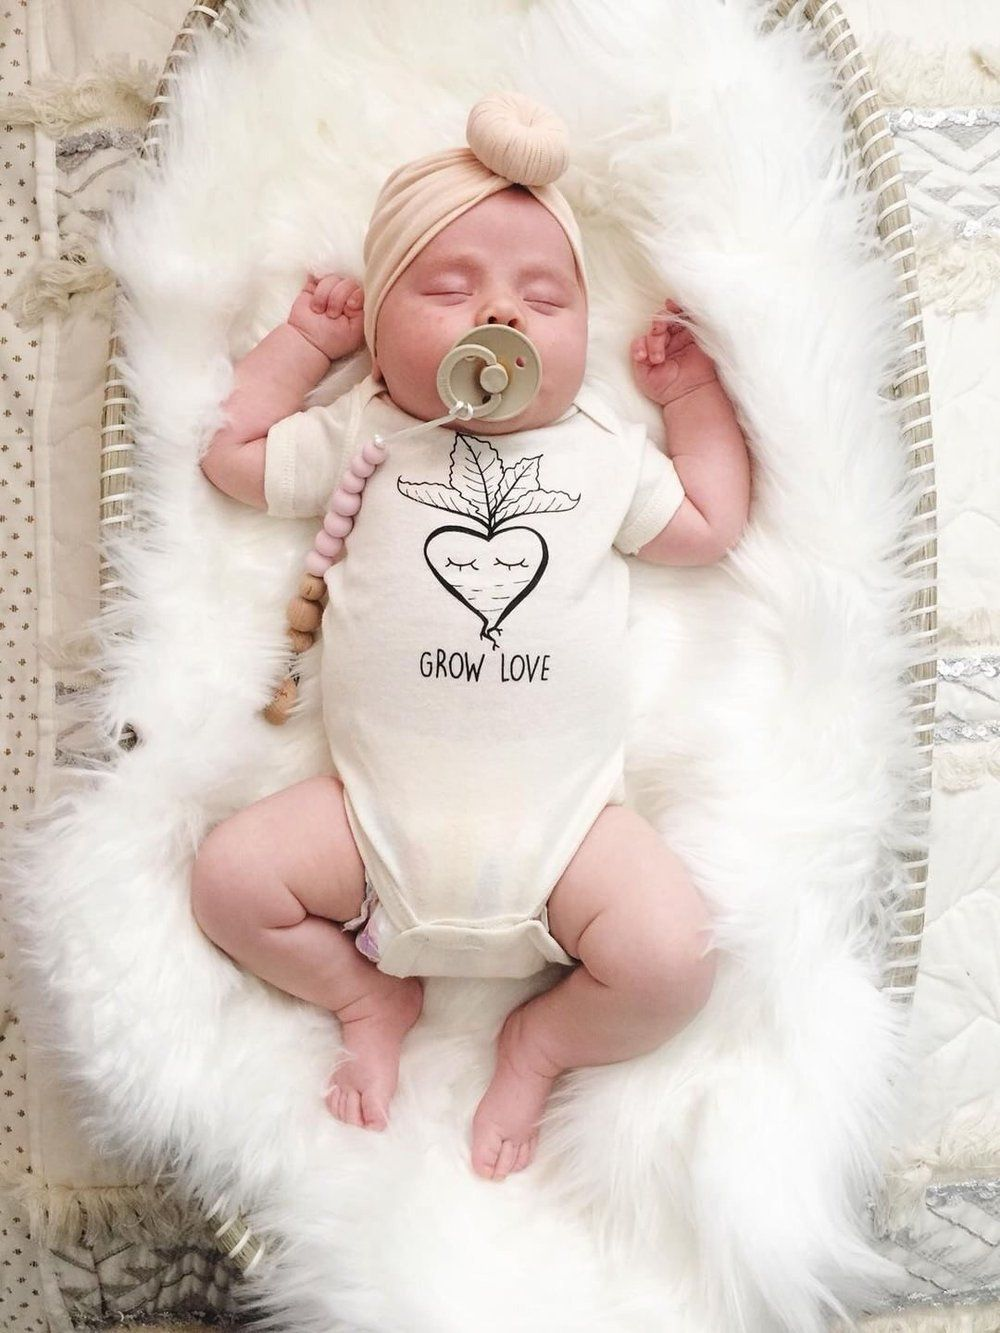 Grow Love Radish Organic Bodysuit + Tee - Project Nursery